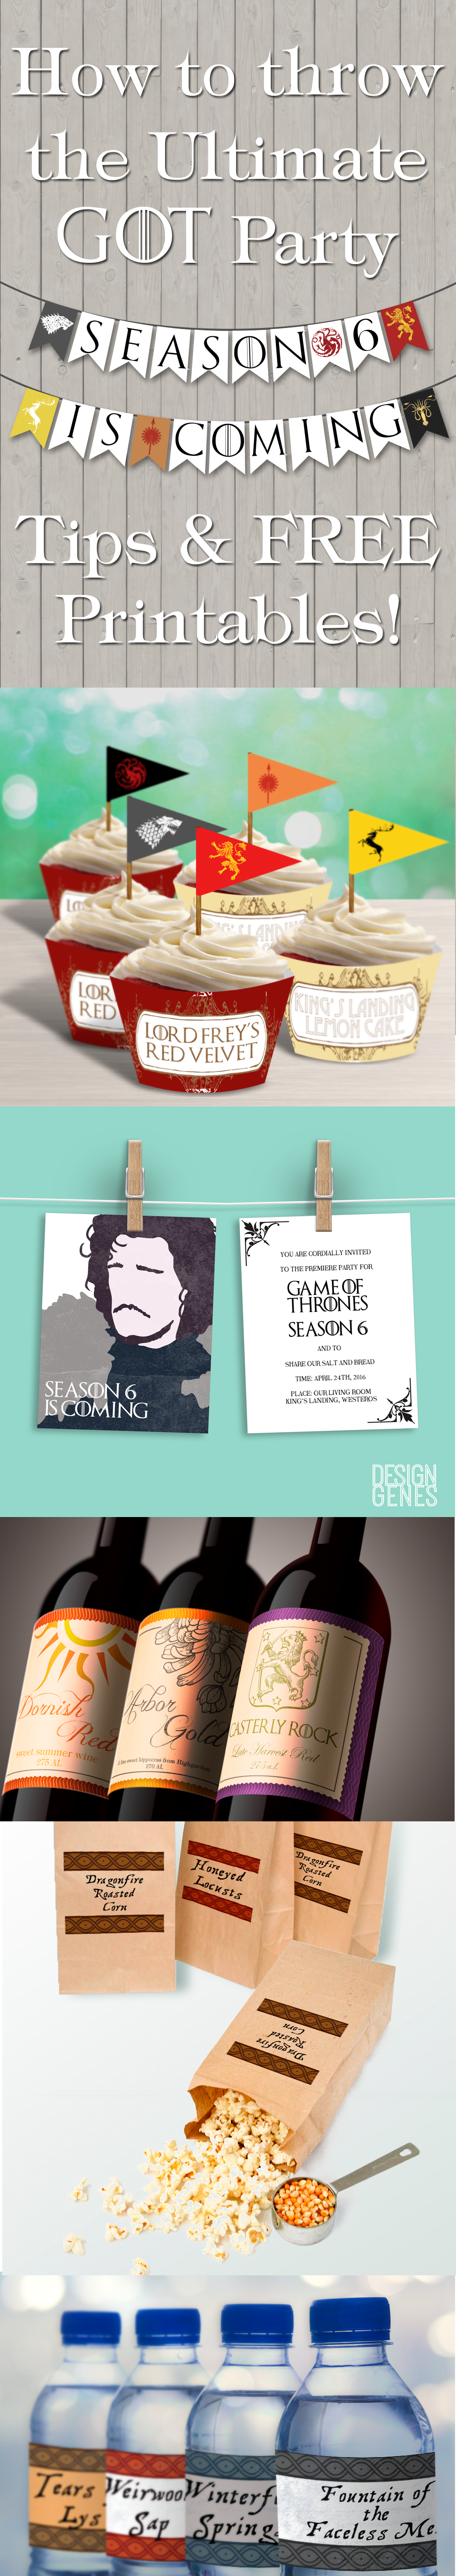 Can't wait til April 24th? These FREE Game of Thrones Party Decor got you covered! How to throw the ultimate GOT party, tips & free printables from www.designgenesstudio.com